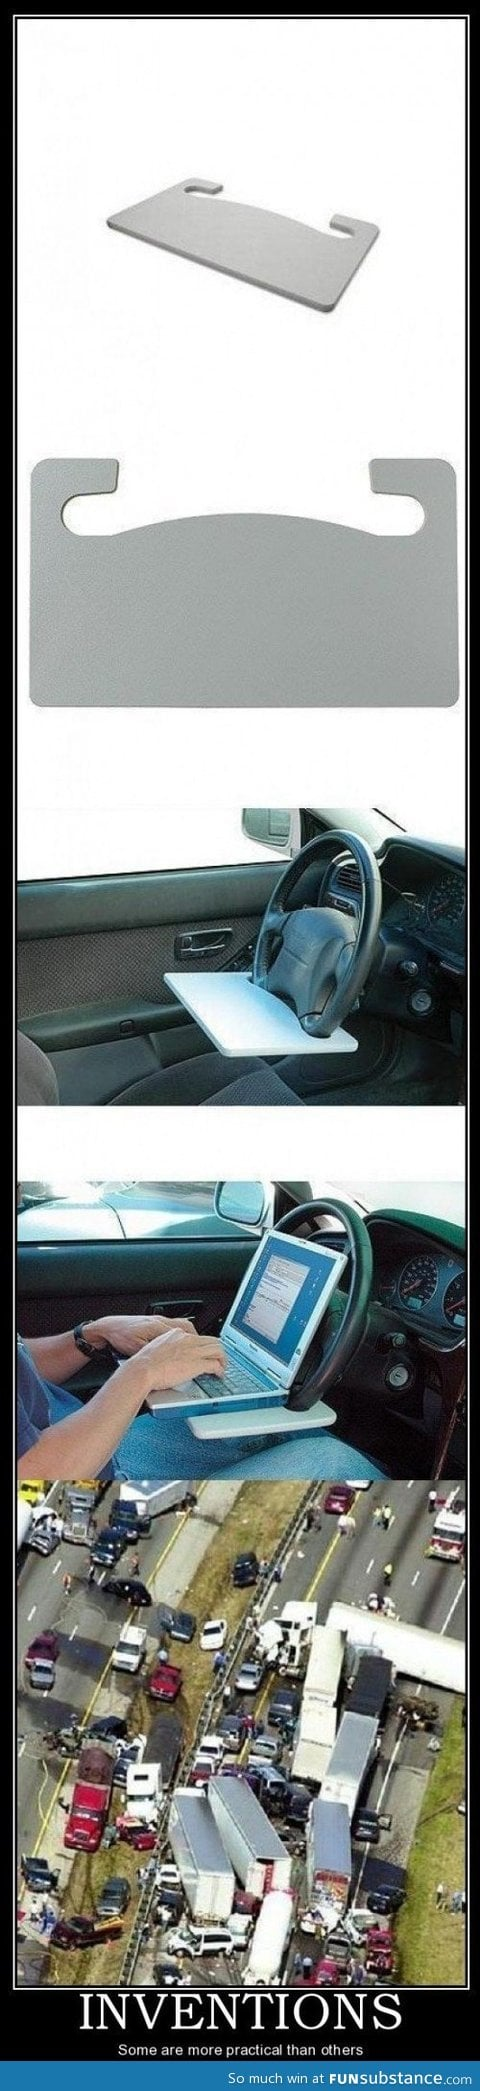 Cool invention! Wait...